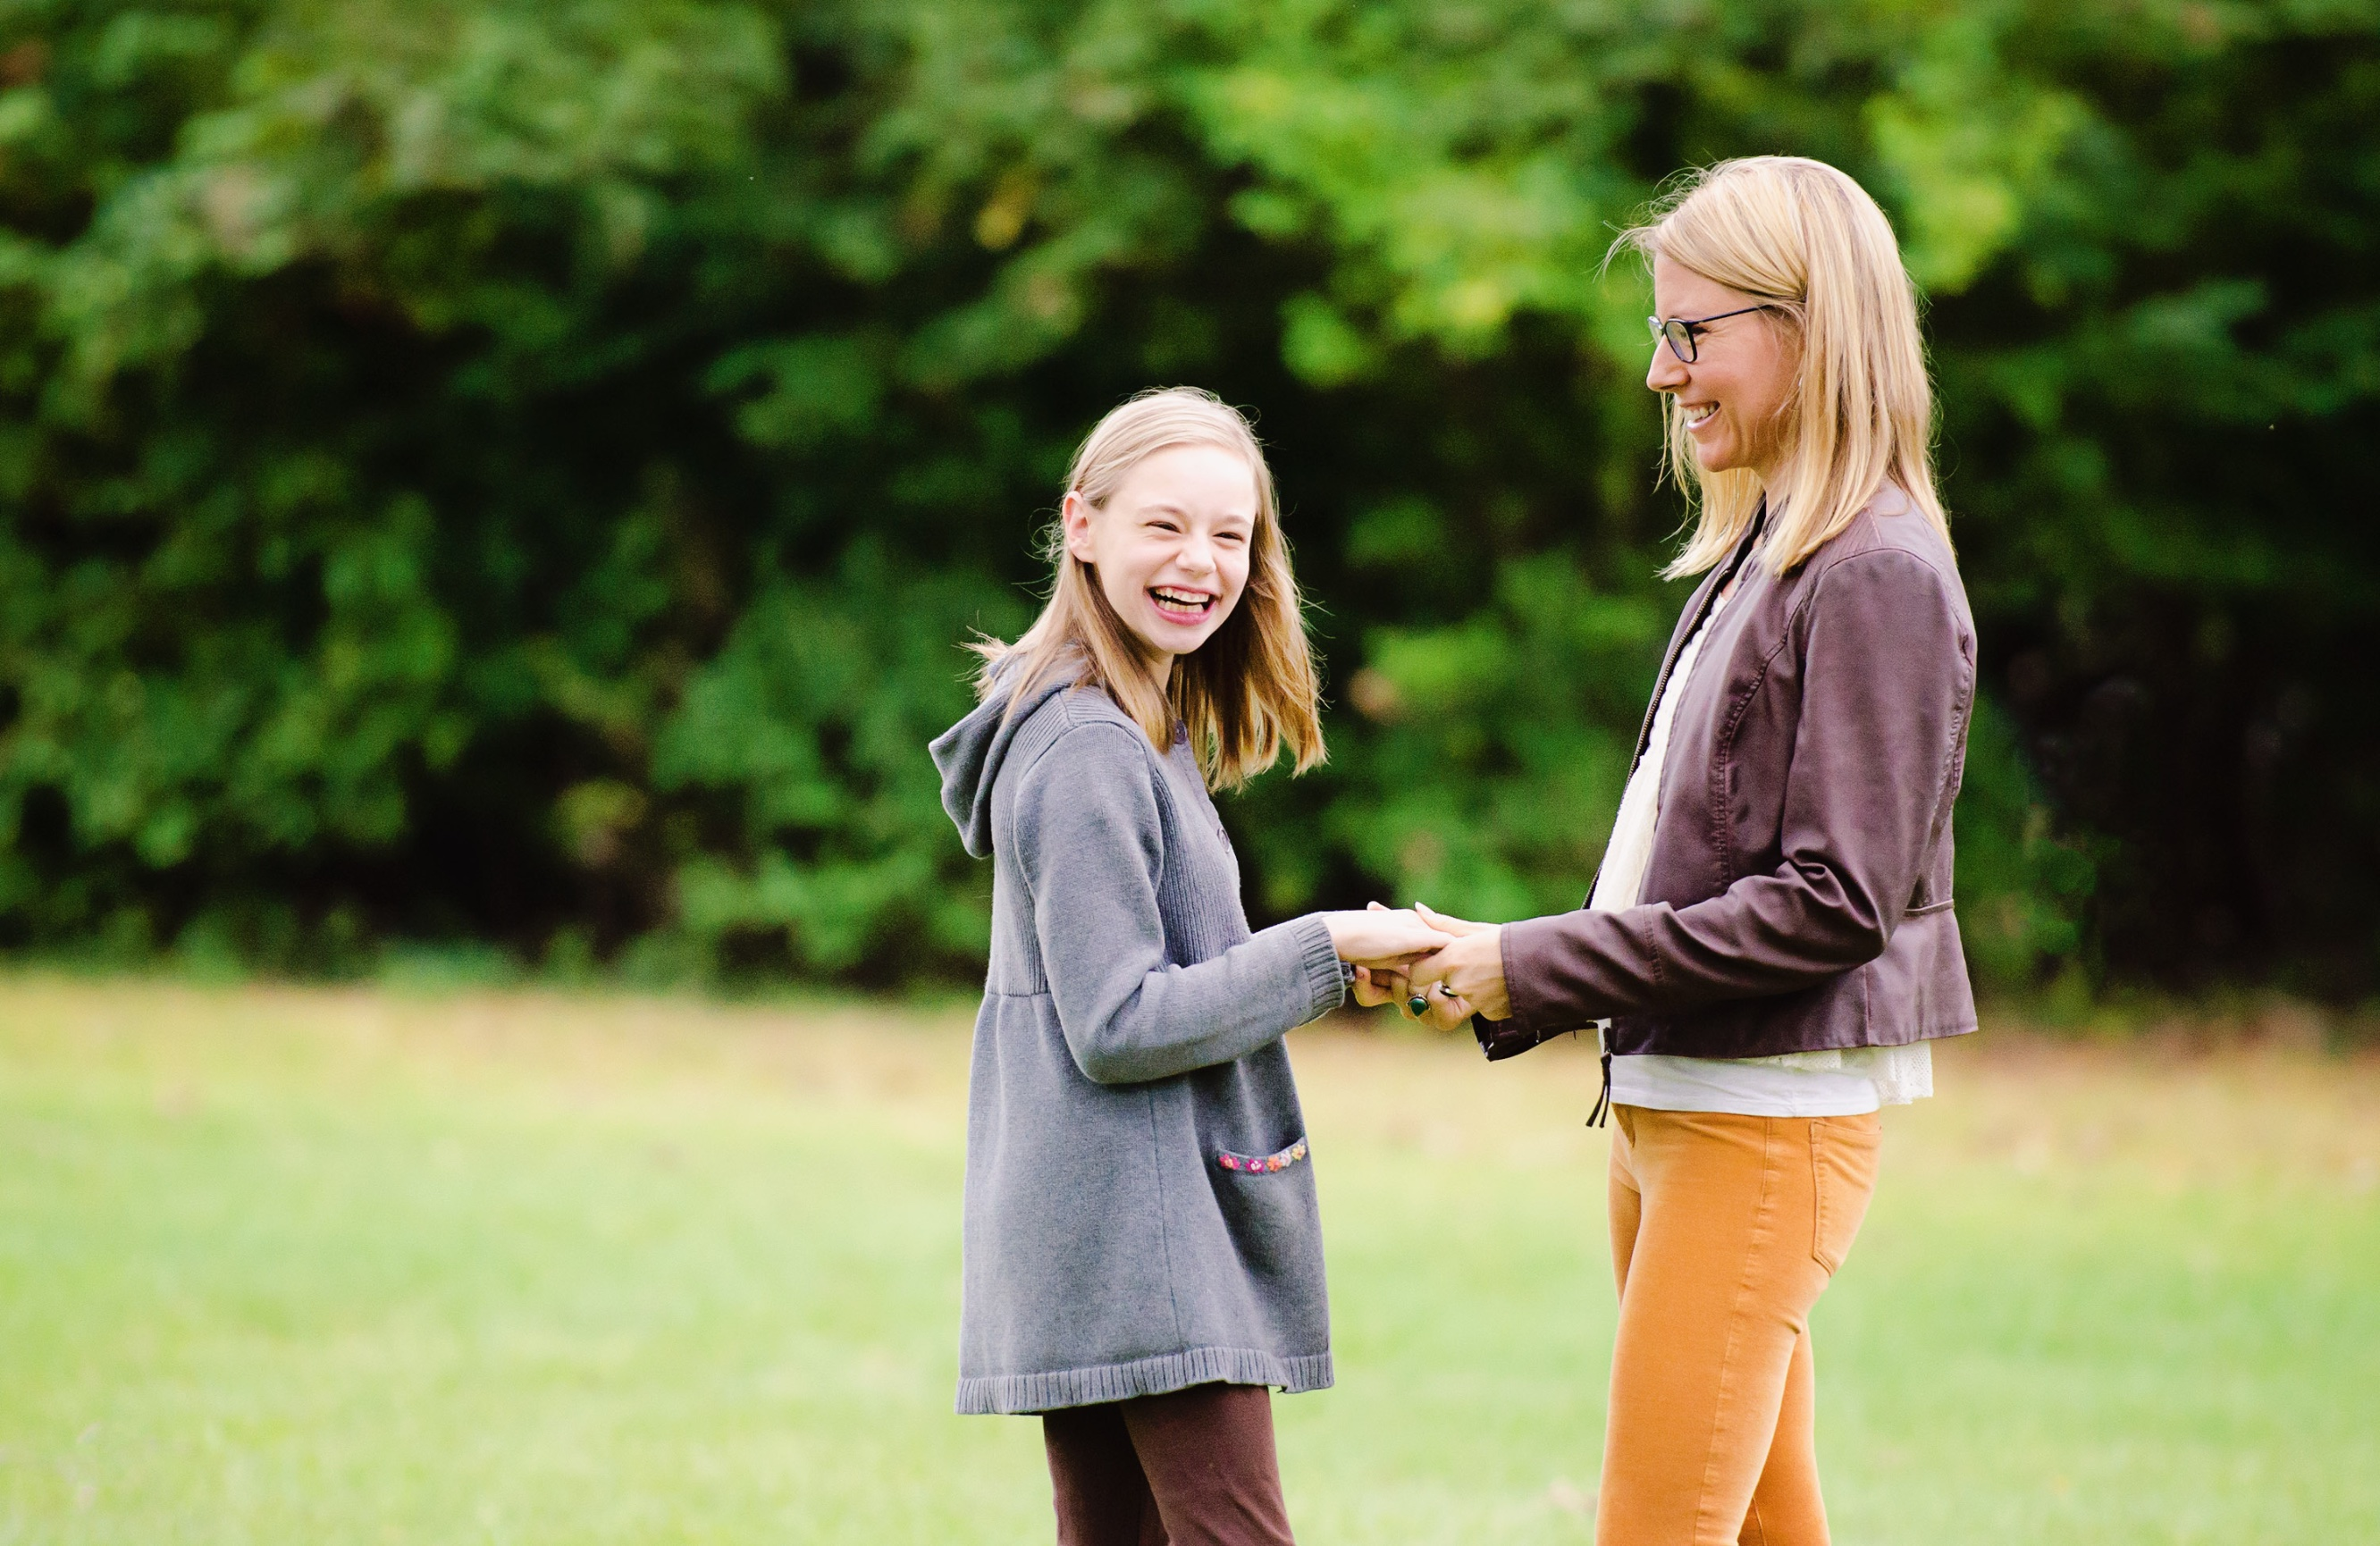 About - Luminary Parenting with Tara Vogel